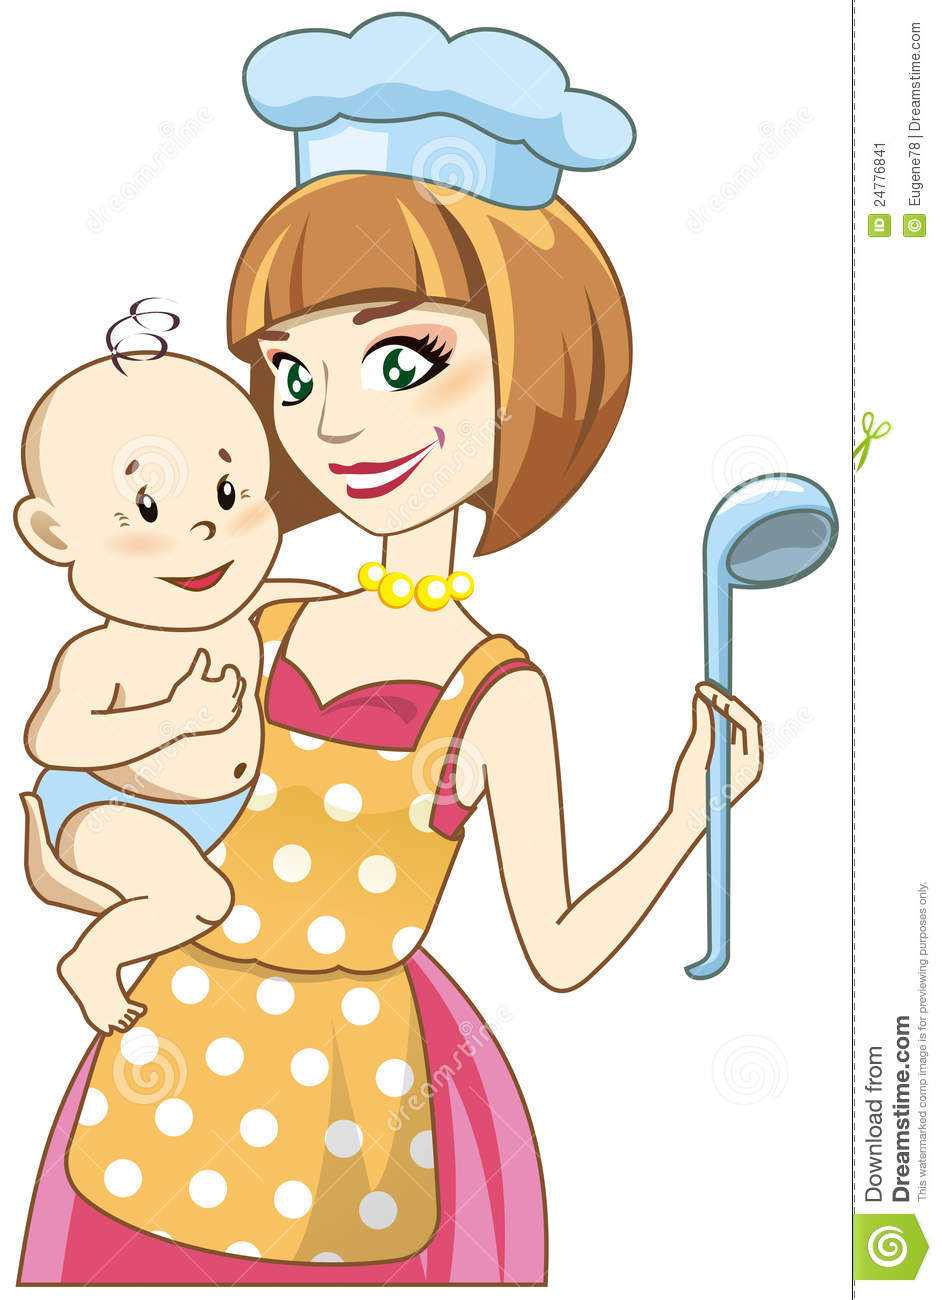 baby eating clipart - photo #19